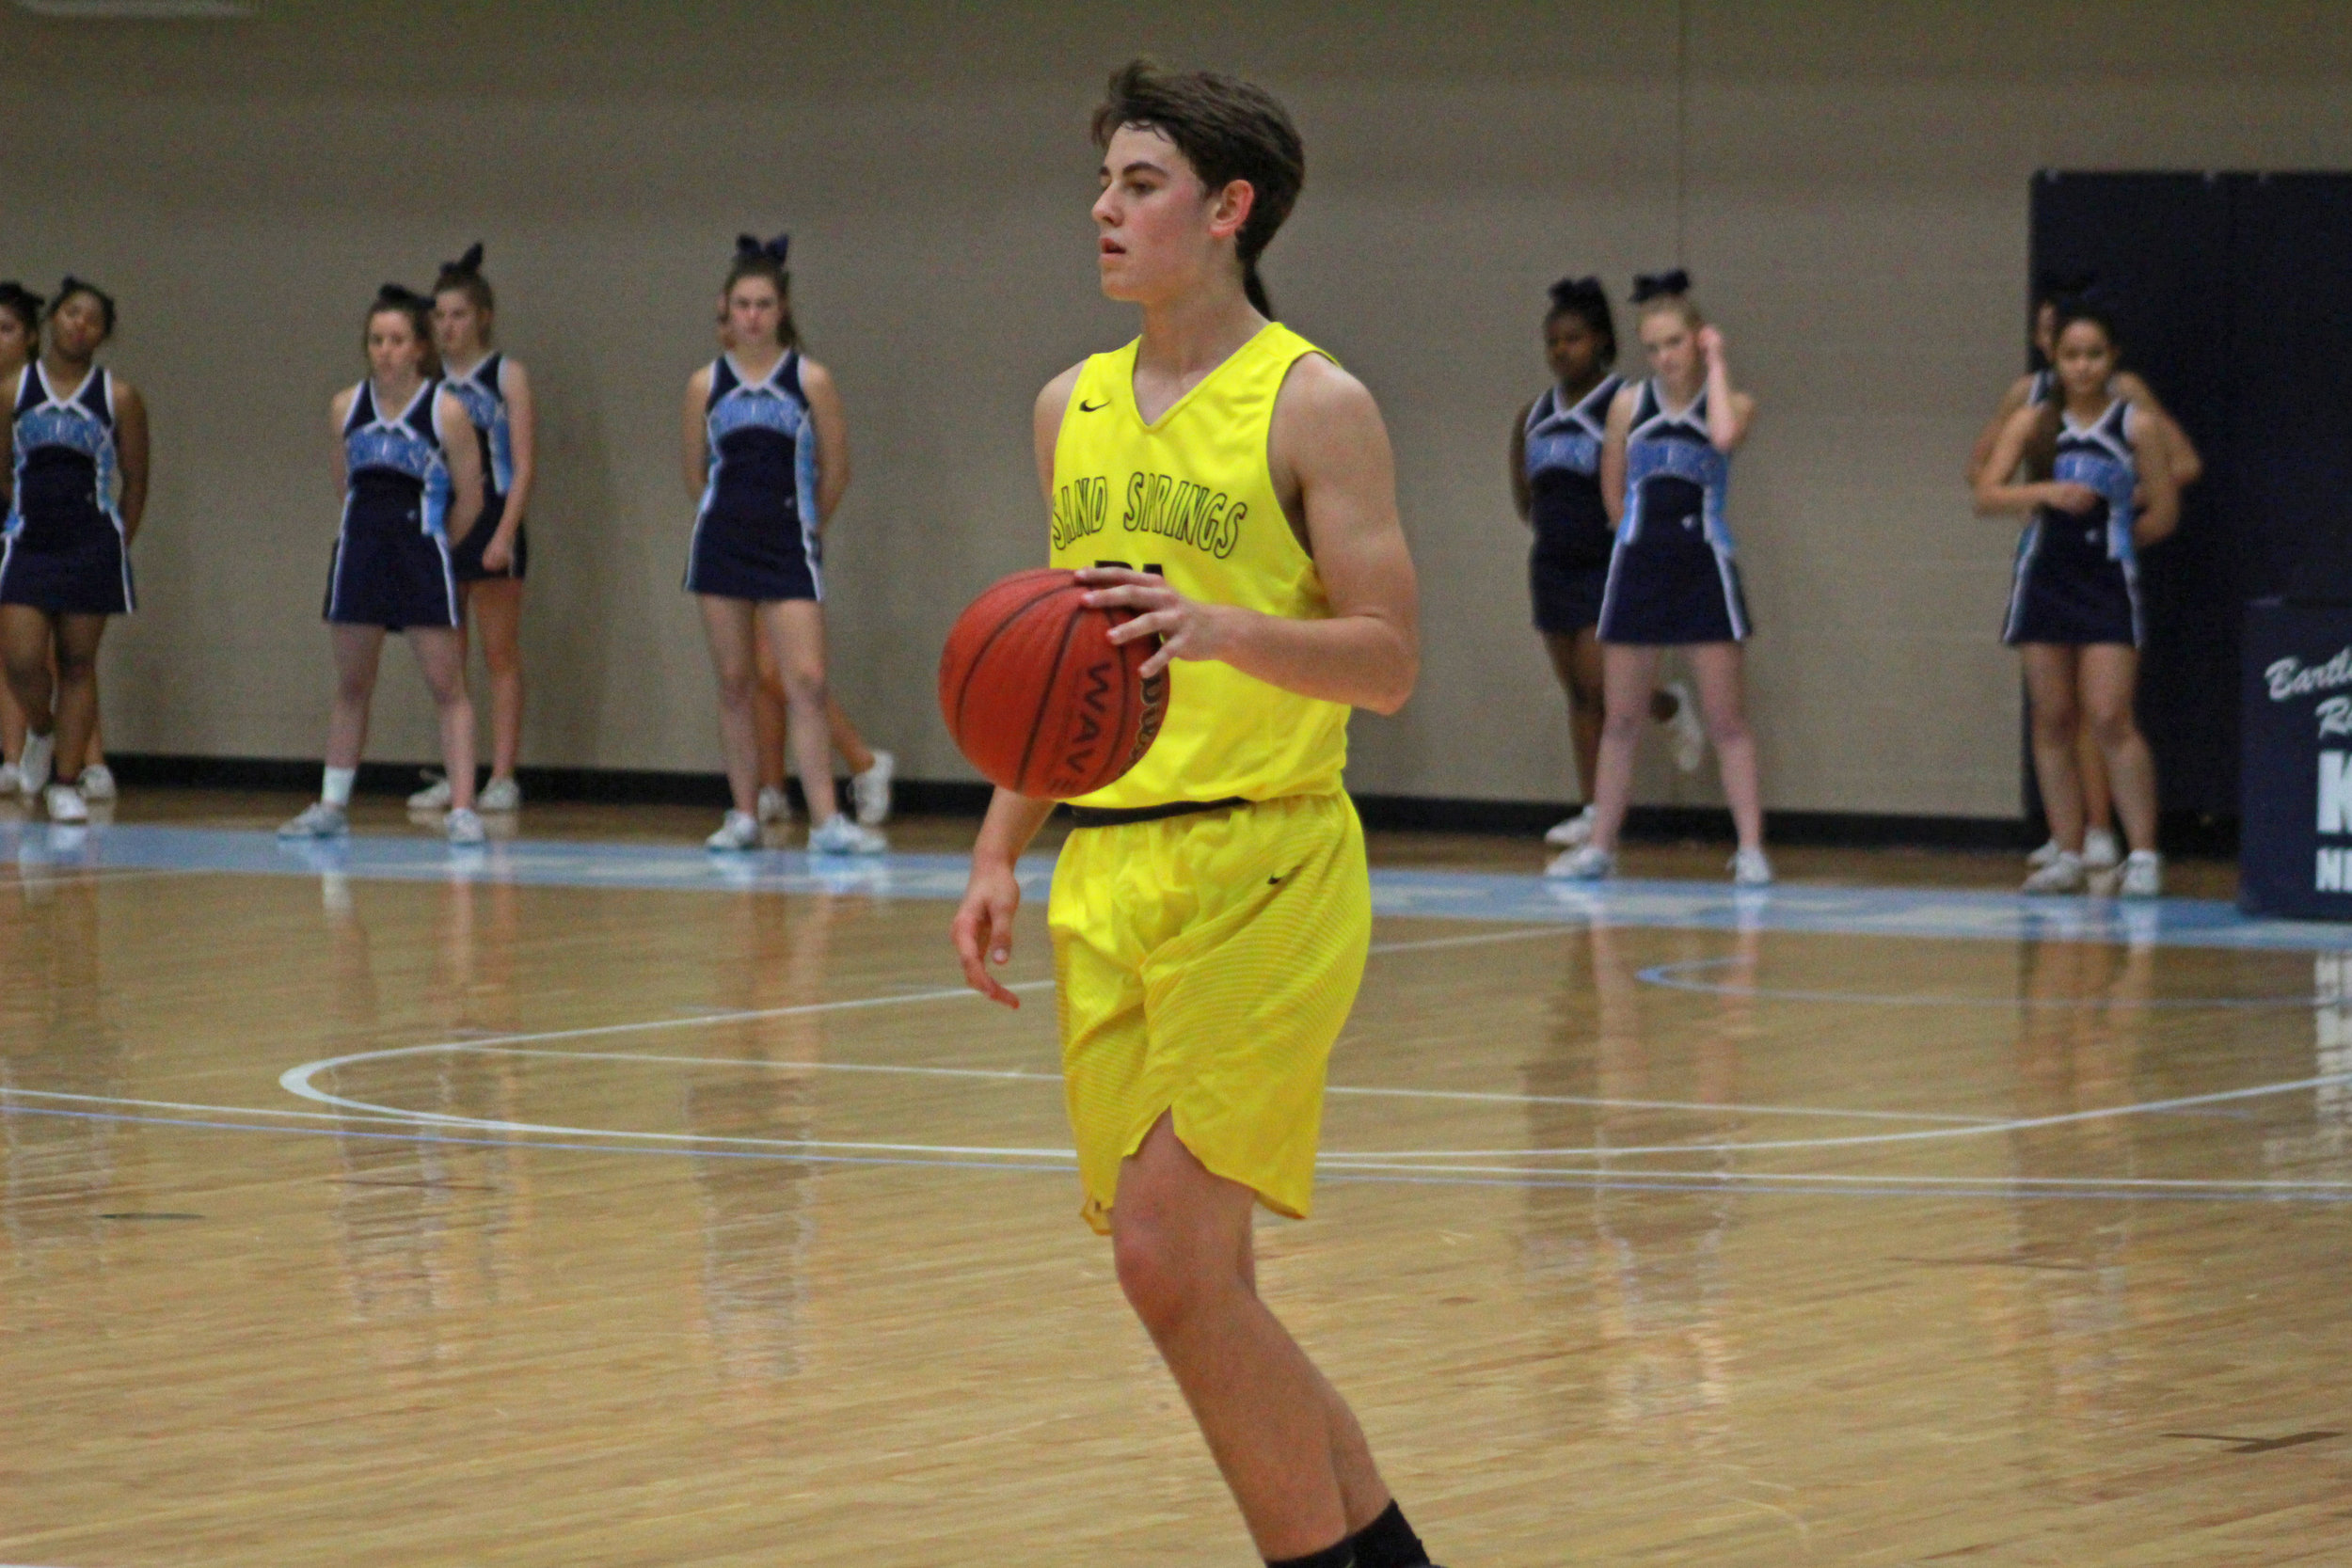 Cale Savage led his team with a career-high fourteen points against Bartlesville. (Photo: Morgan Miller).